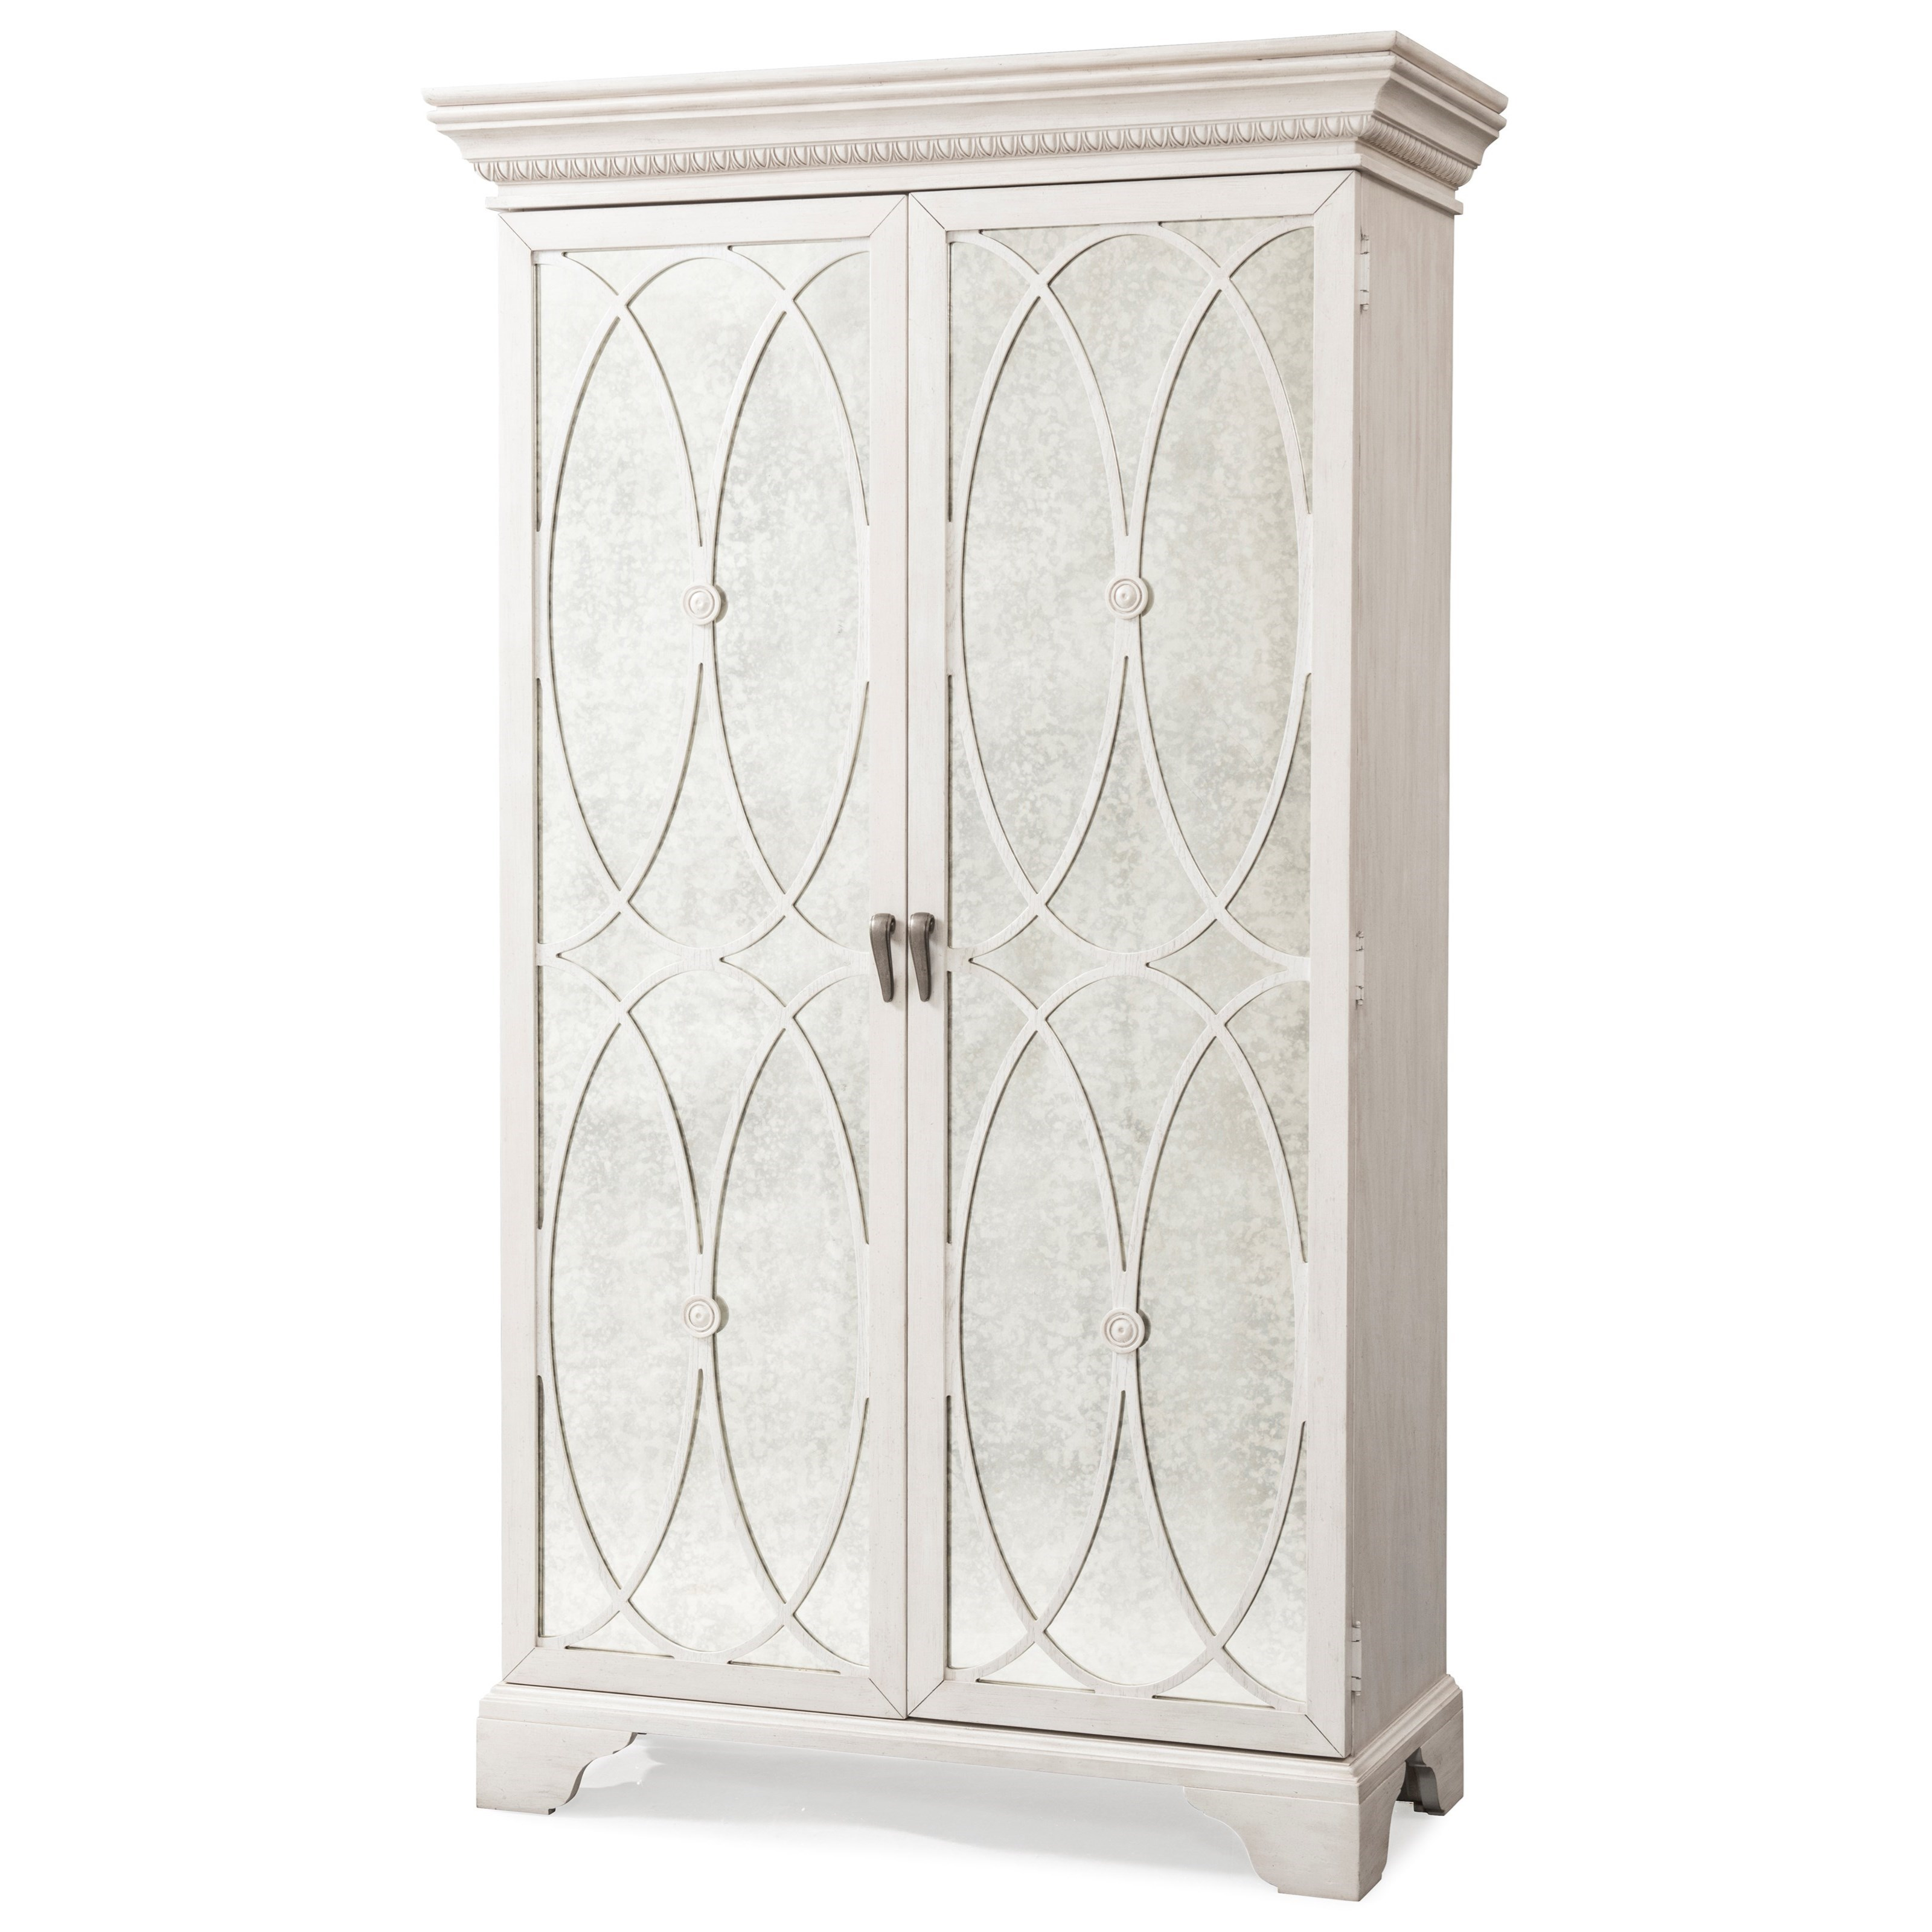 Jasper County Madison TV Armoire by Trisha Yearwood Home Collection by Klaussner at Pilgrim Furniture City